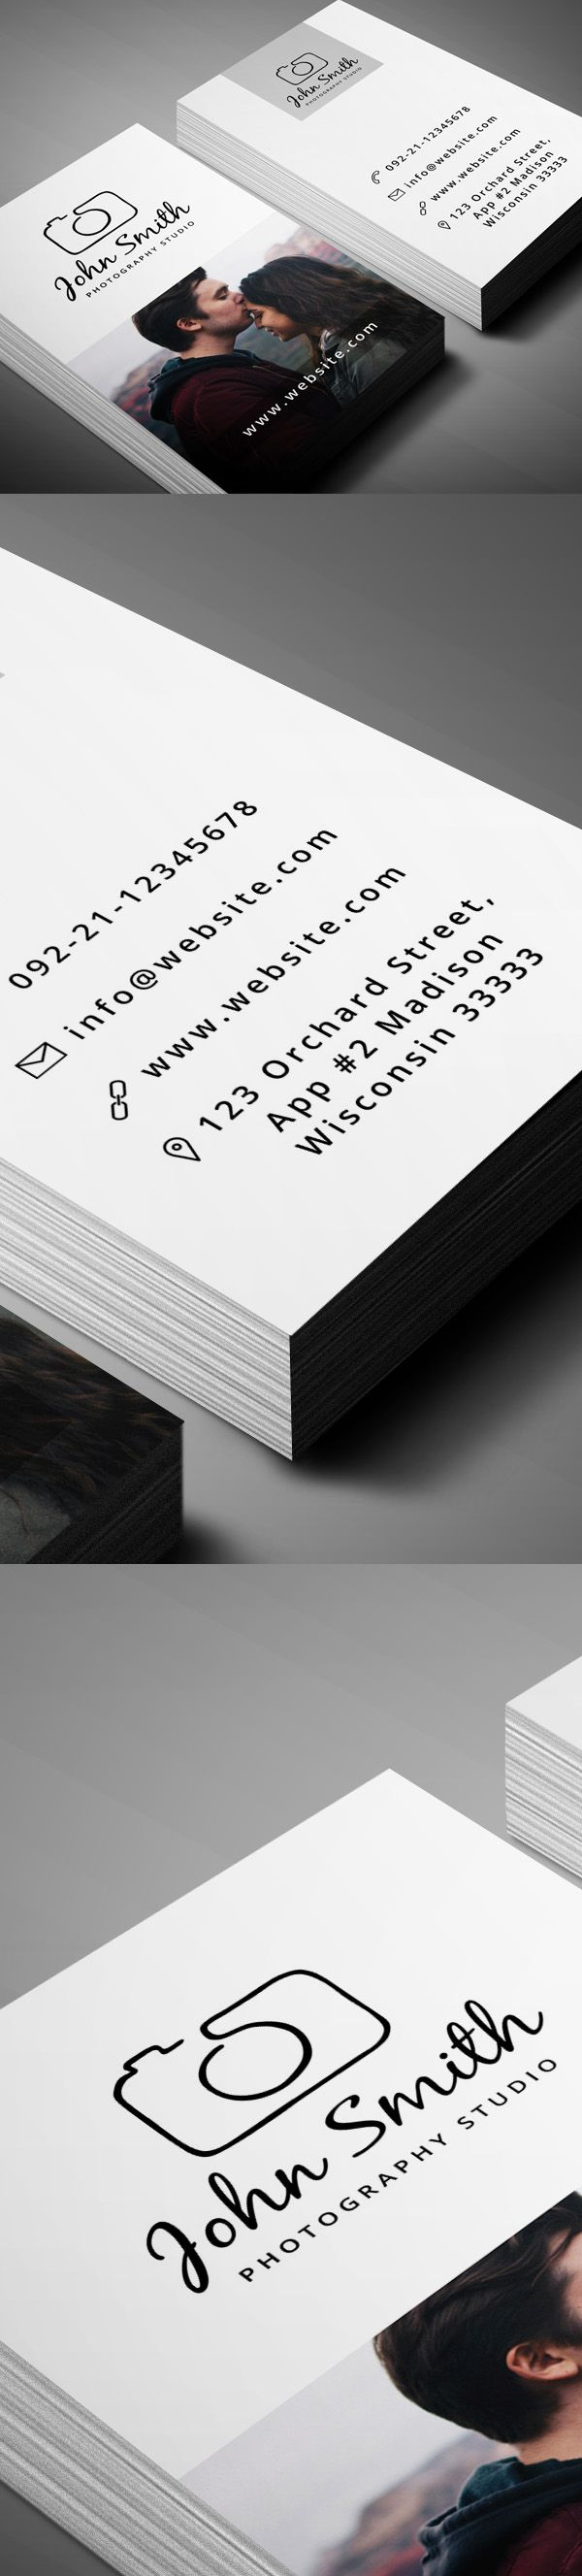 Best 25 photographer business cards ideas on pinterest a simple creative free business card multipurpose designed for freelance photo agencies and professional photographers magicingreecefo Image collections